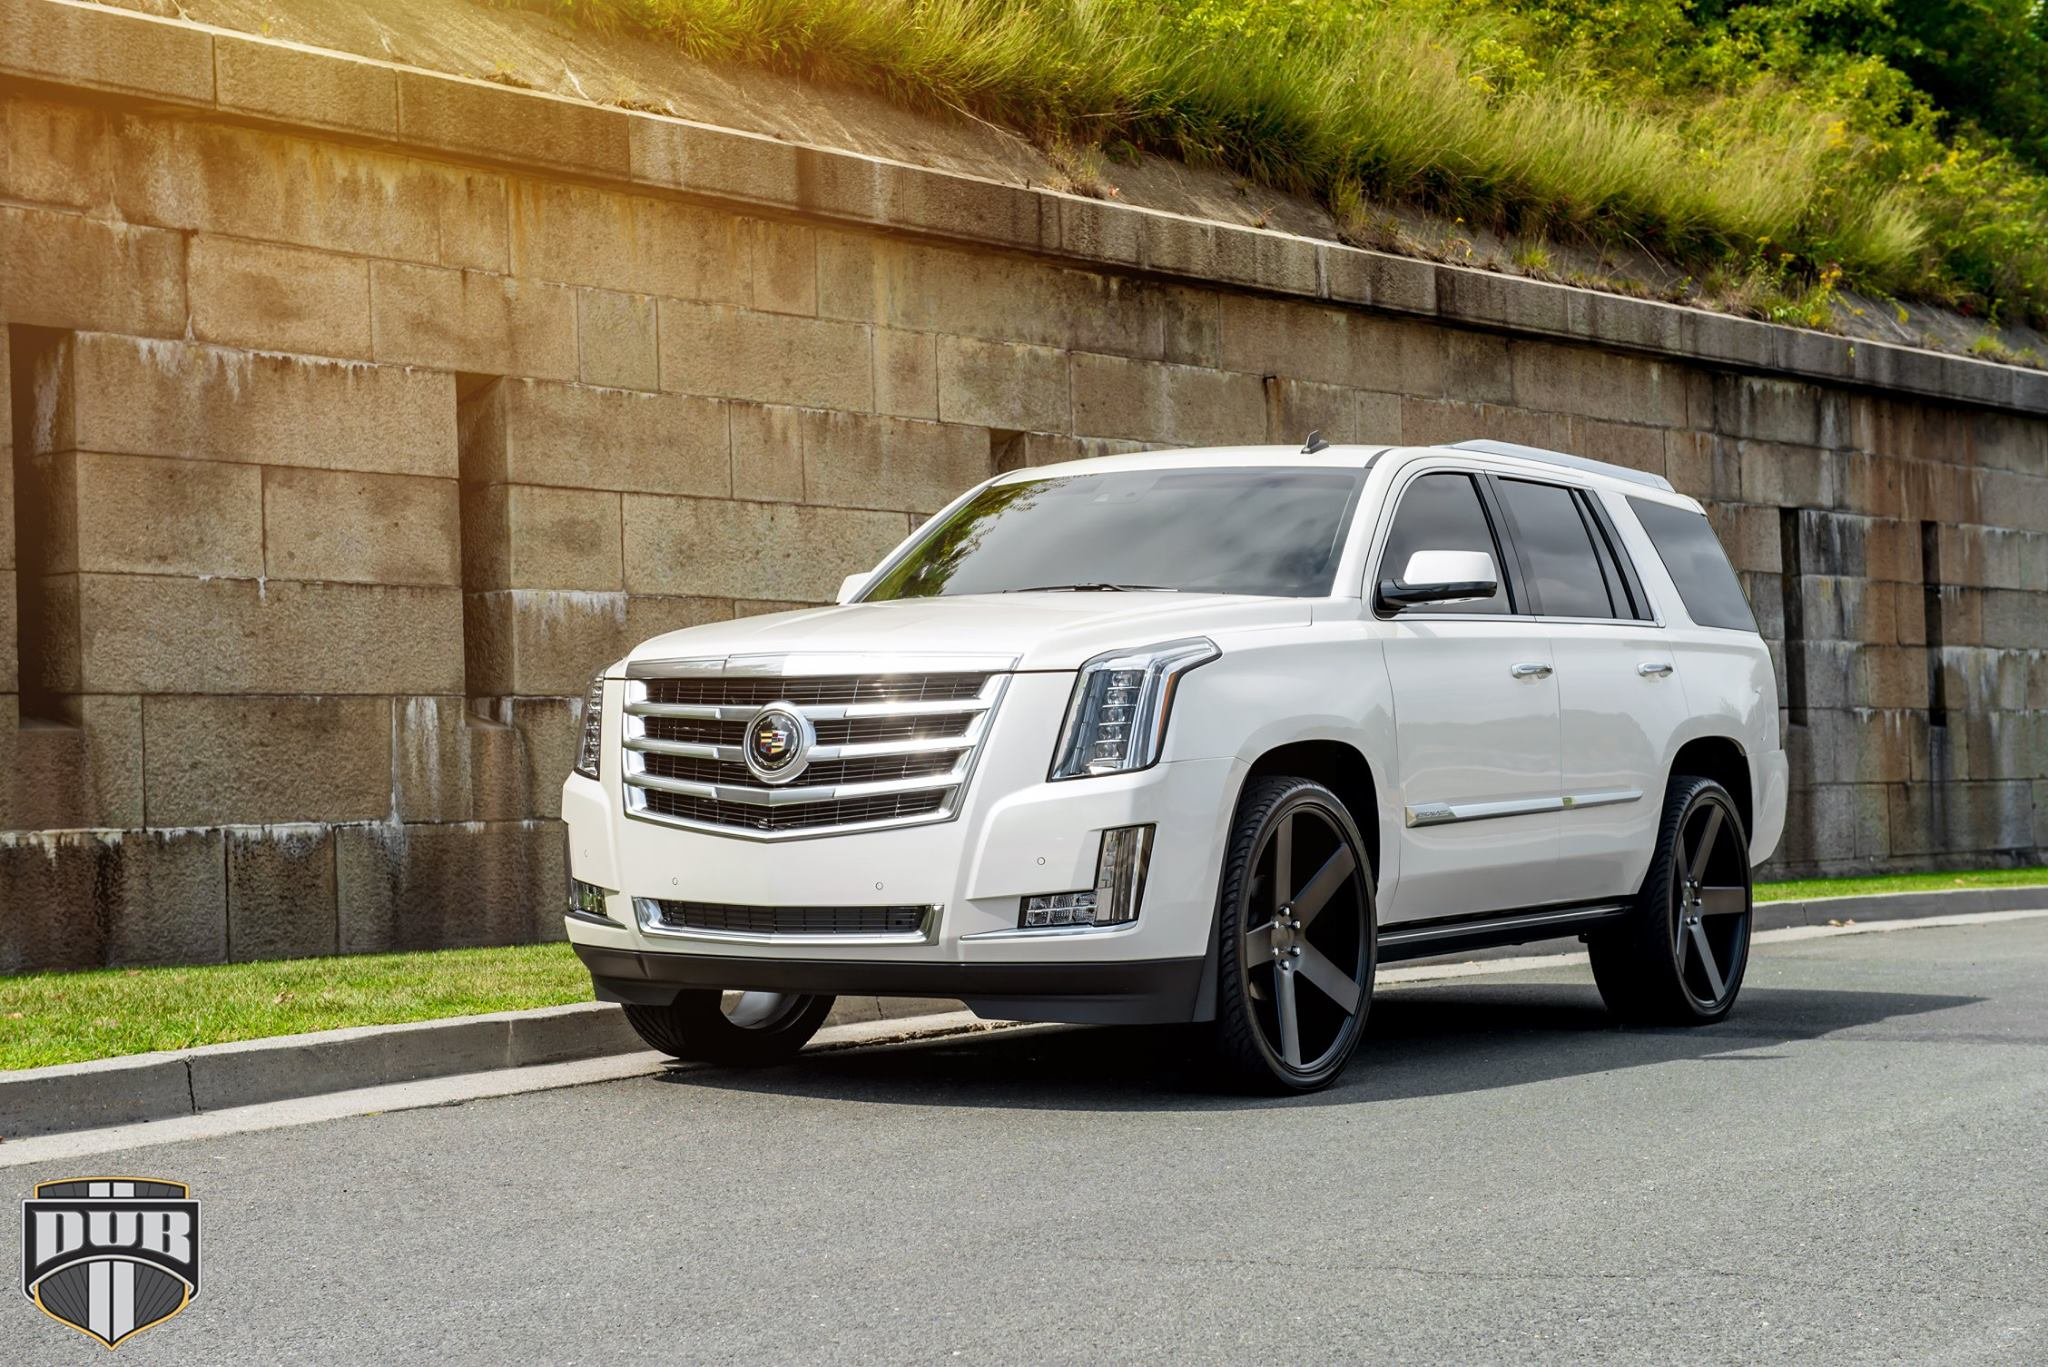 2015 cadillac escalade on 26 inch dub baller wheels rides magazine. Black Bedroom Furniture Sets. Home Design Ideas